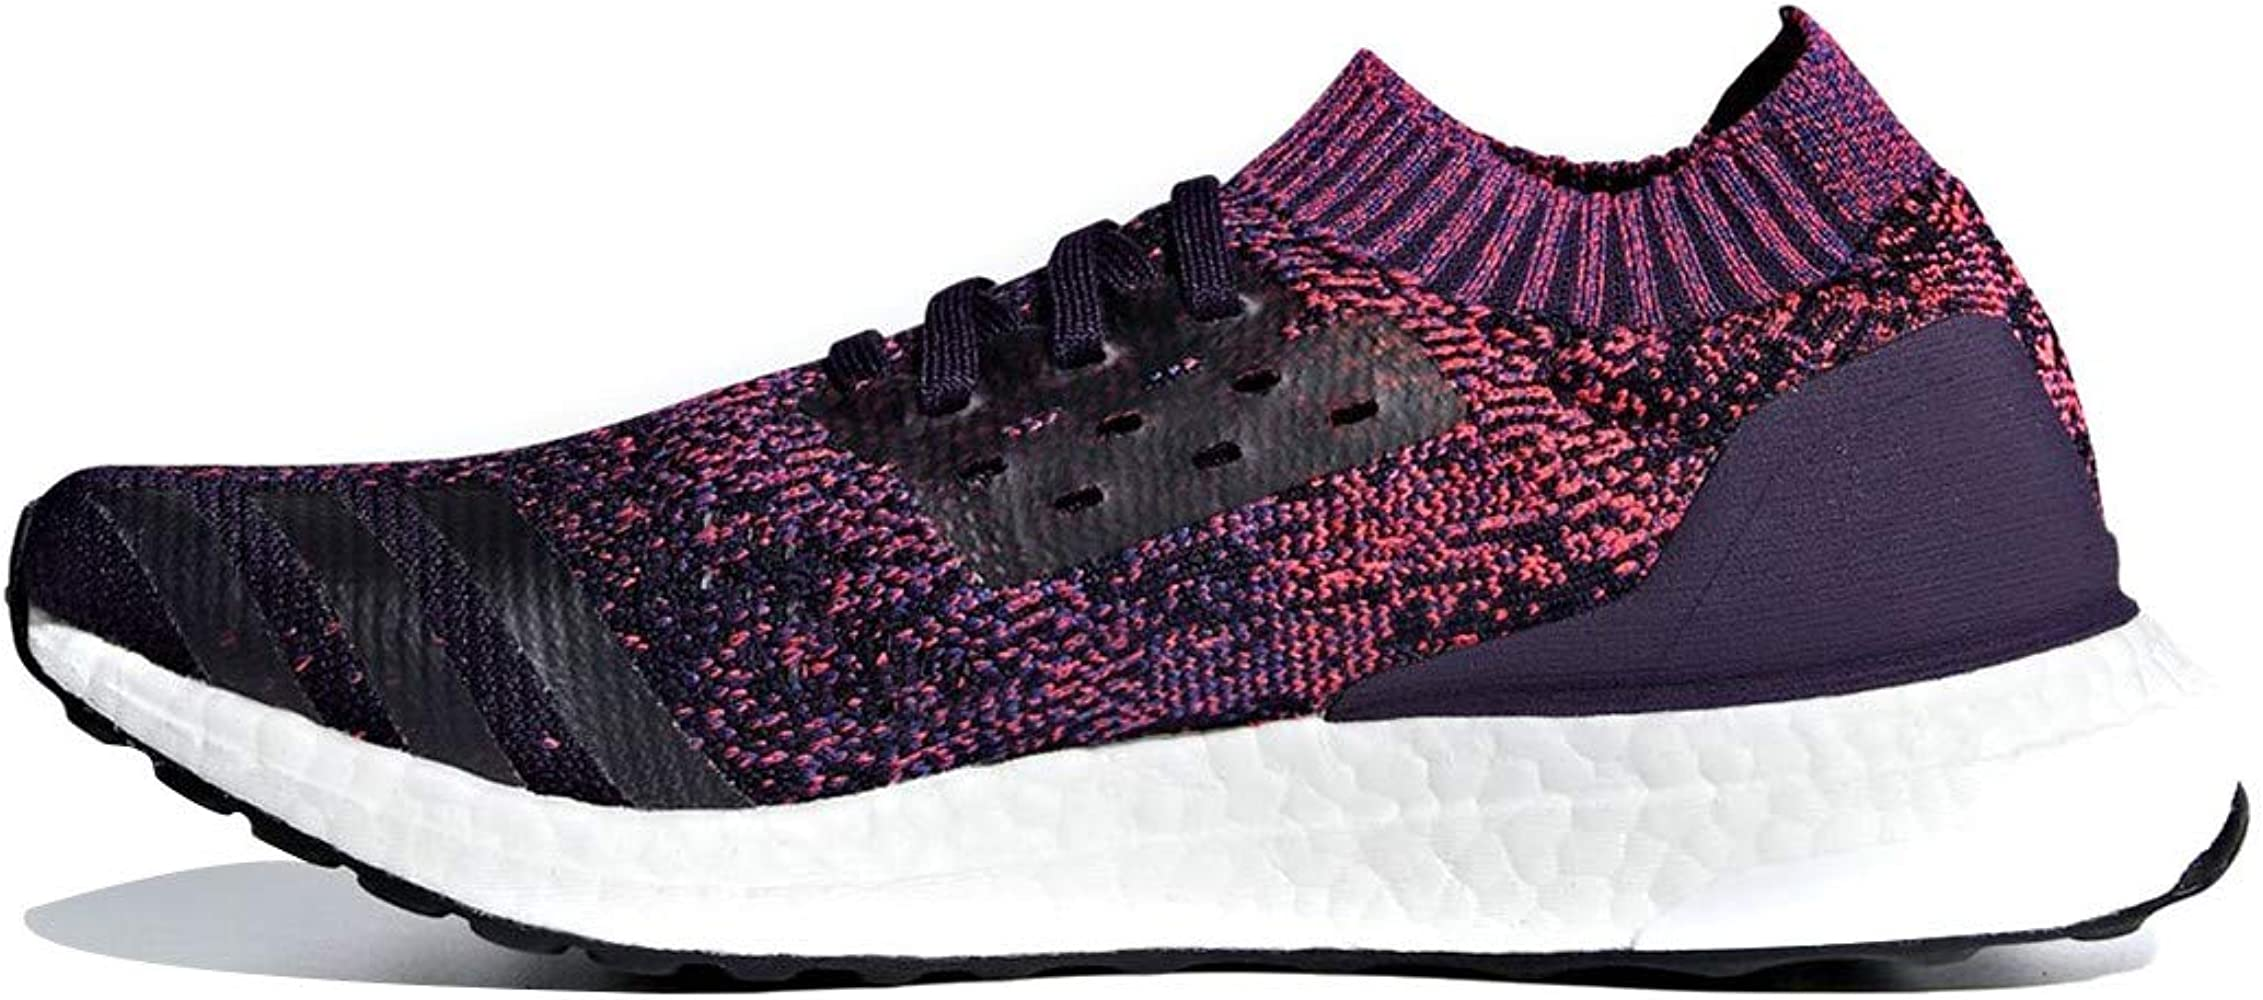 adidas Ultraboost Uncaged Shoes Womens